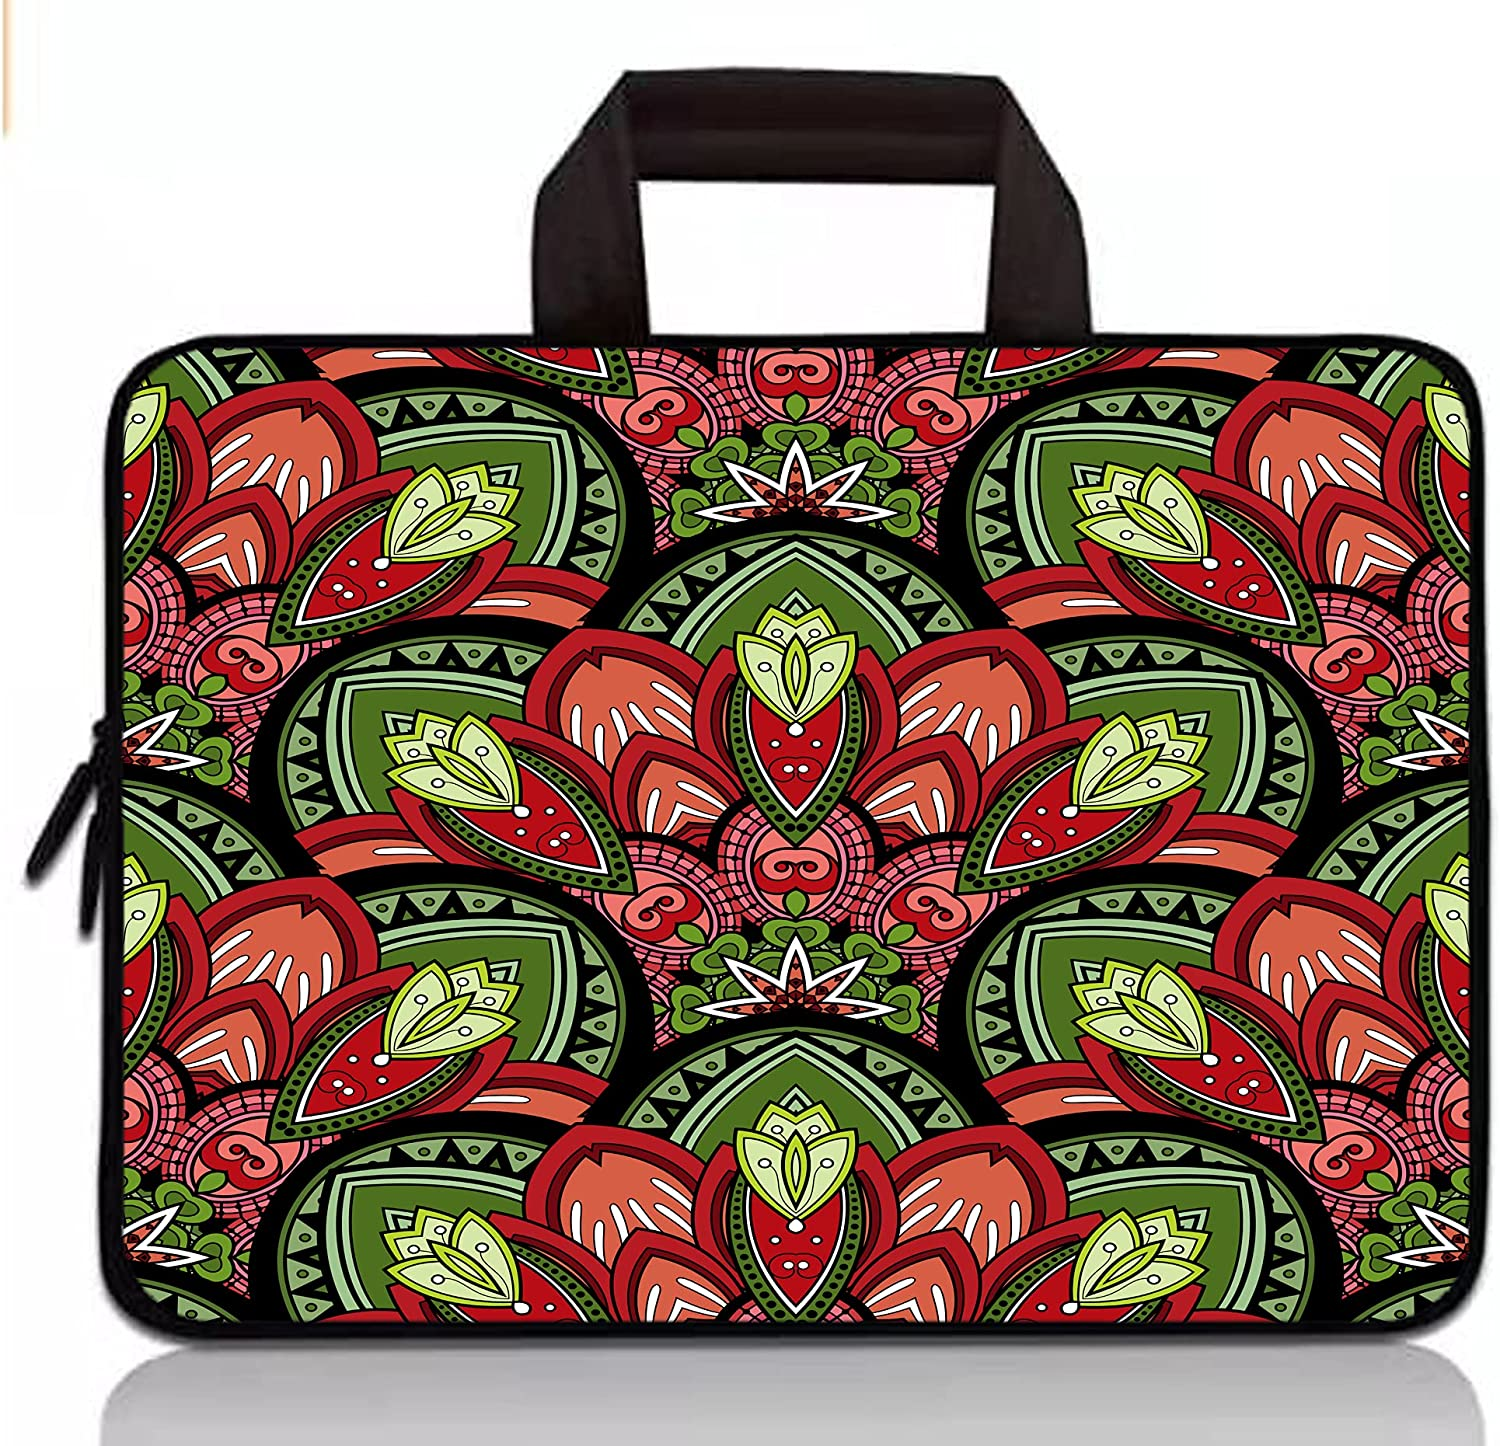 14 Inch Laptop Protective Sleeve Computer Case Bag for Dell Inspiron 14 5481 5482/ HP Stream 14/ Acer Swift Spin 3/Lenovo Ideapad 3/Chromebook 14 S330 / Flex 5 14 Notebook Briefcase-Boho Flower